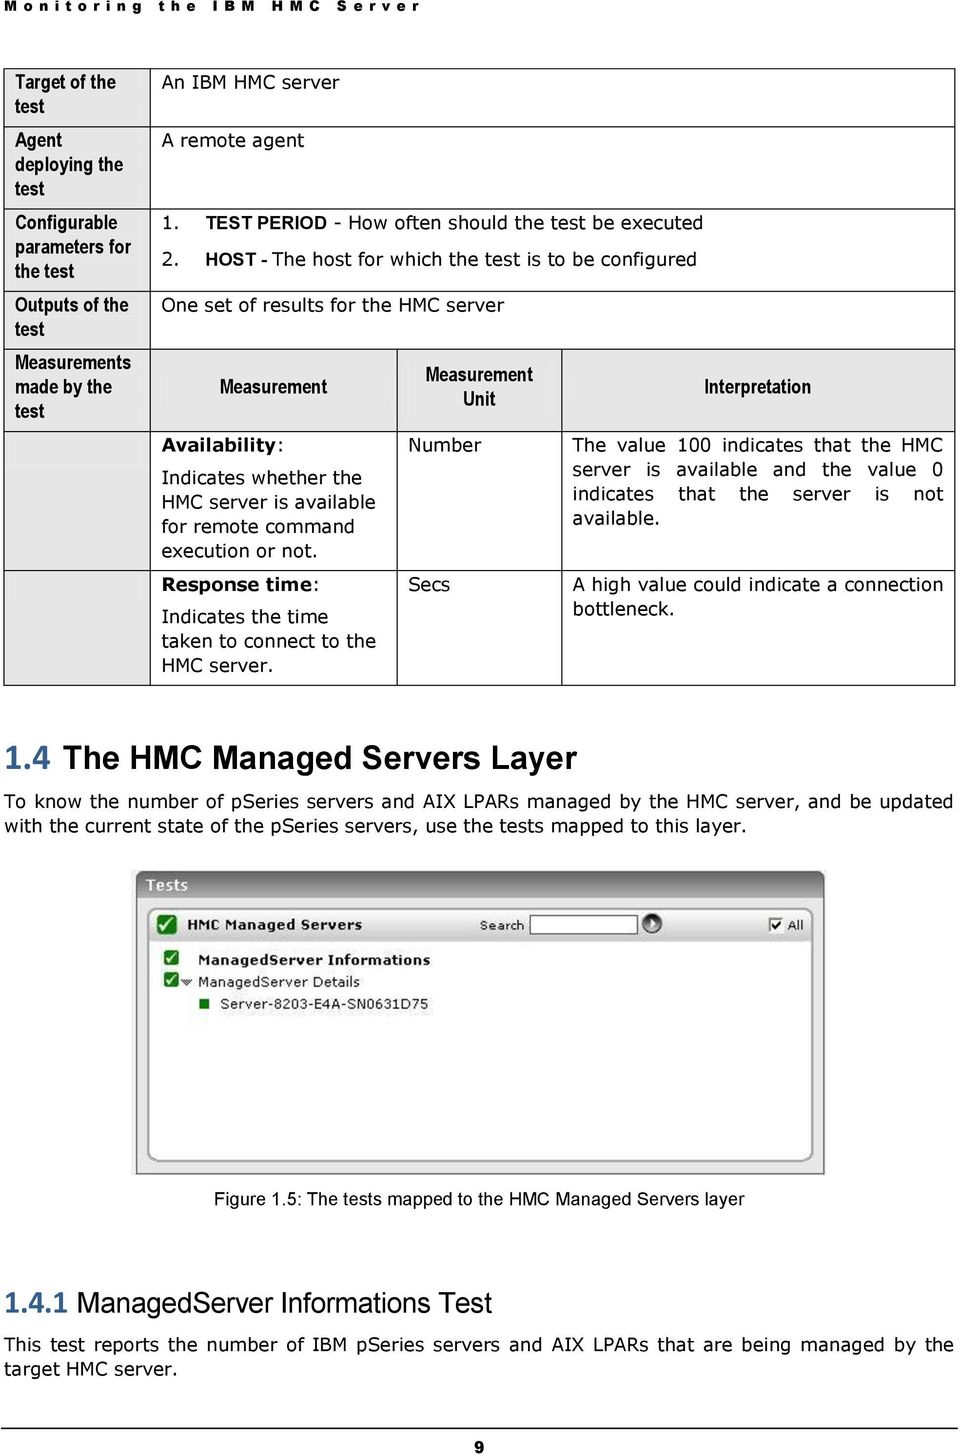 Response time: Indicates the time taken to connect to the HMC server. Secs The value 100 indicates that the HMC server is available and the value 0 indicates that the server is not available.